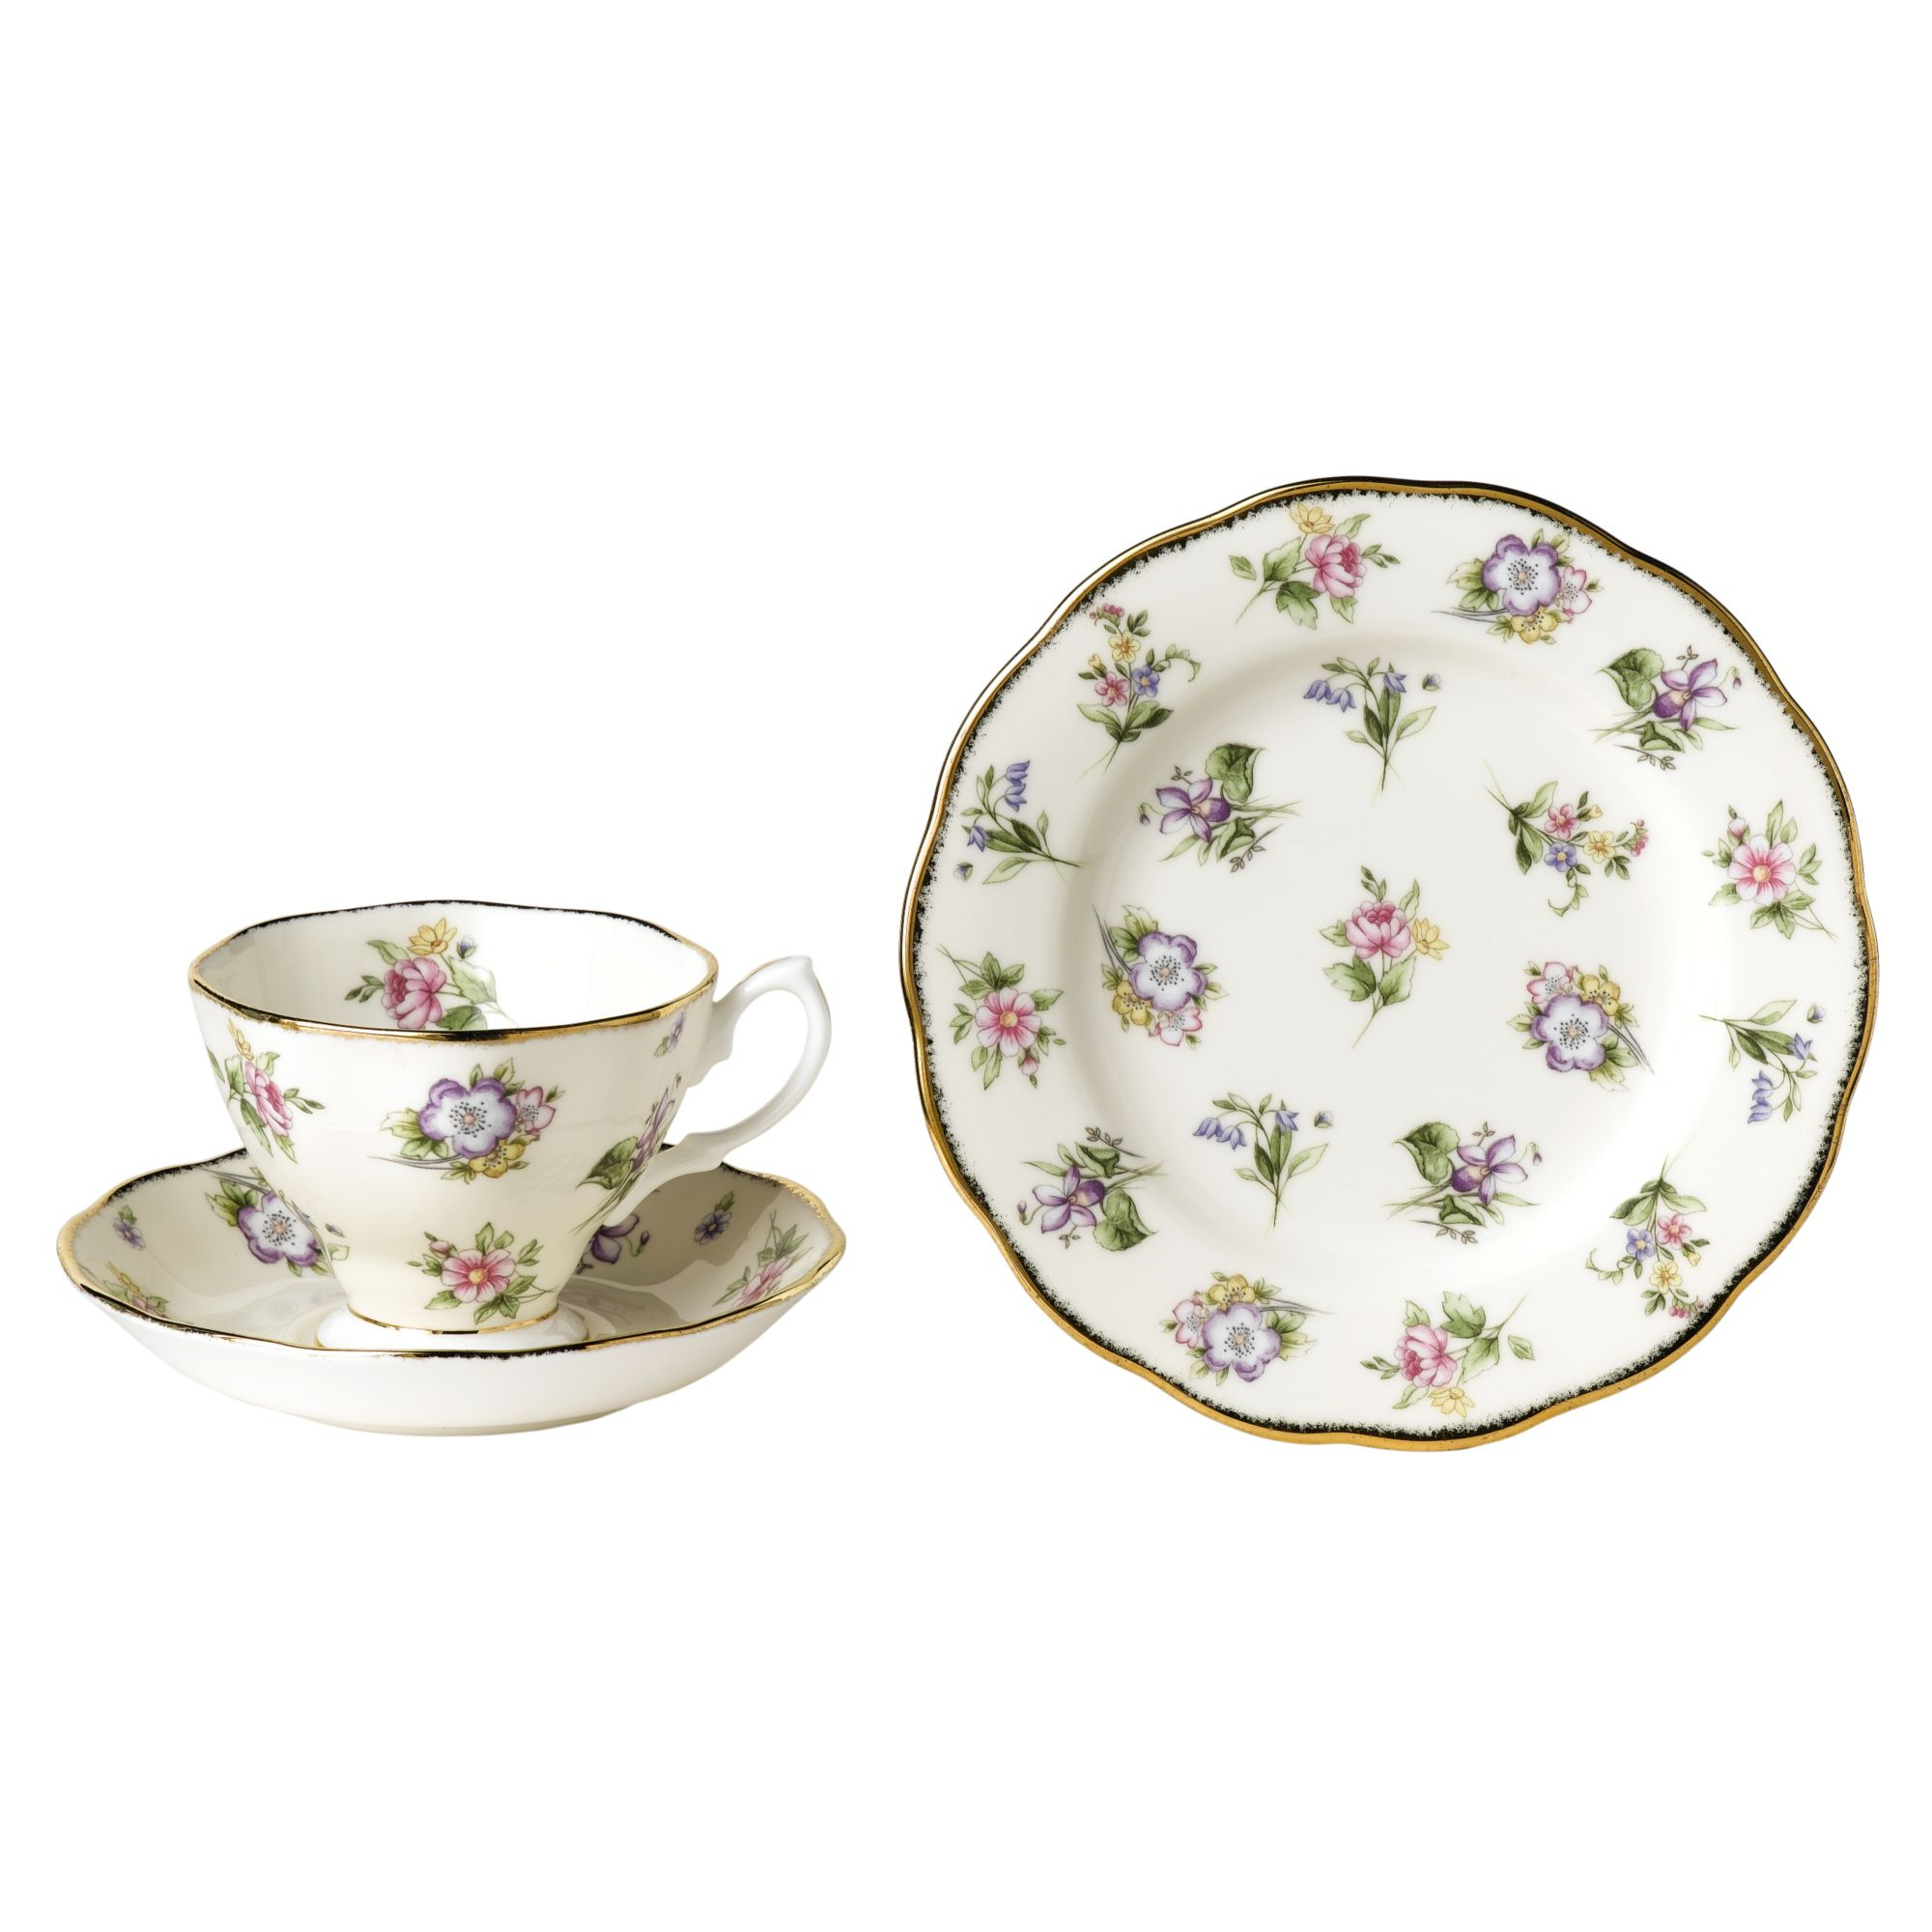 1920 spring meadow 3-piece set